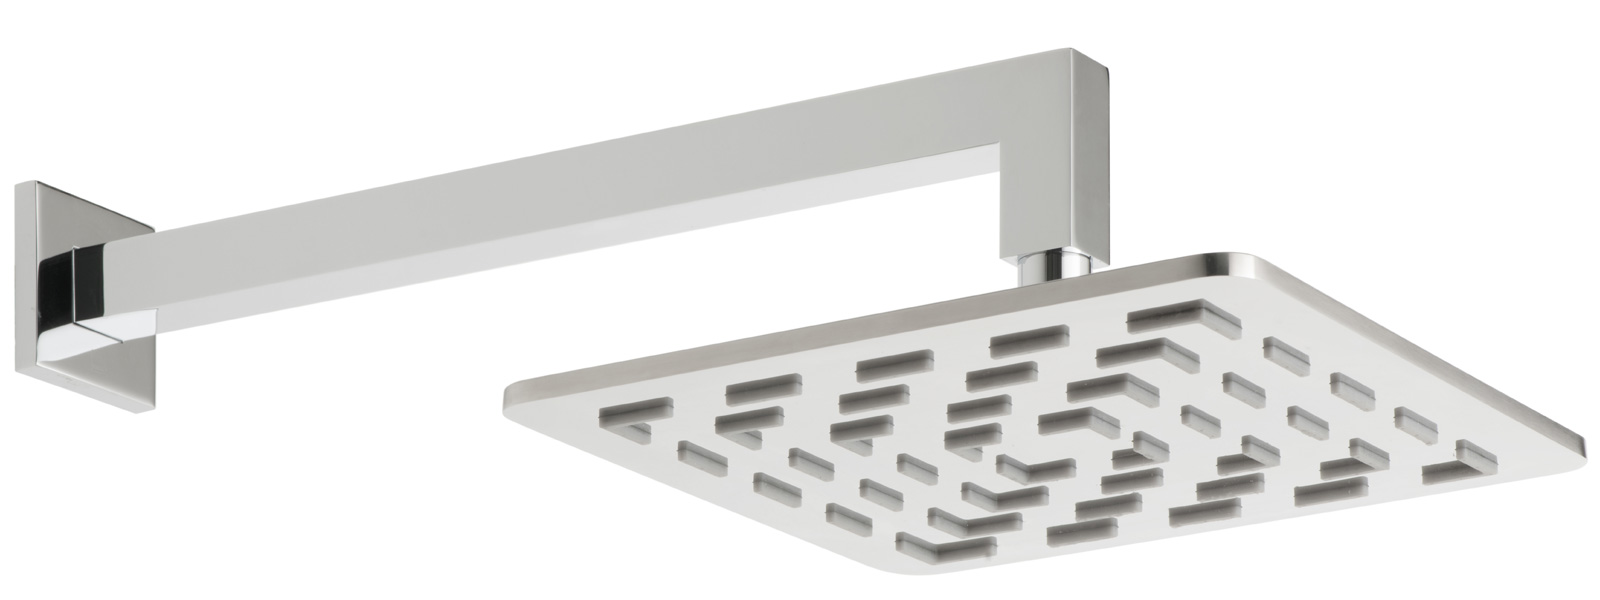 Vado launches Geometry shower heads